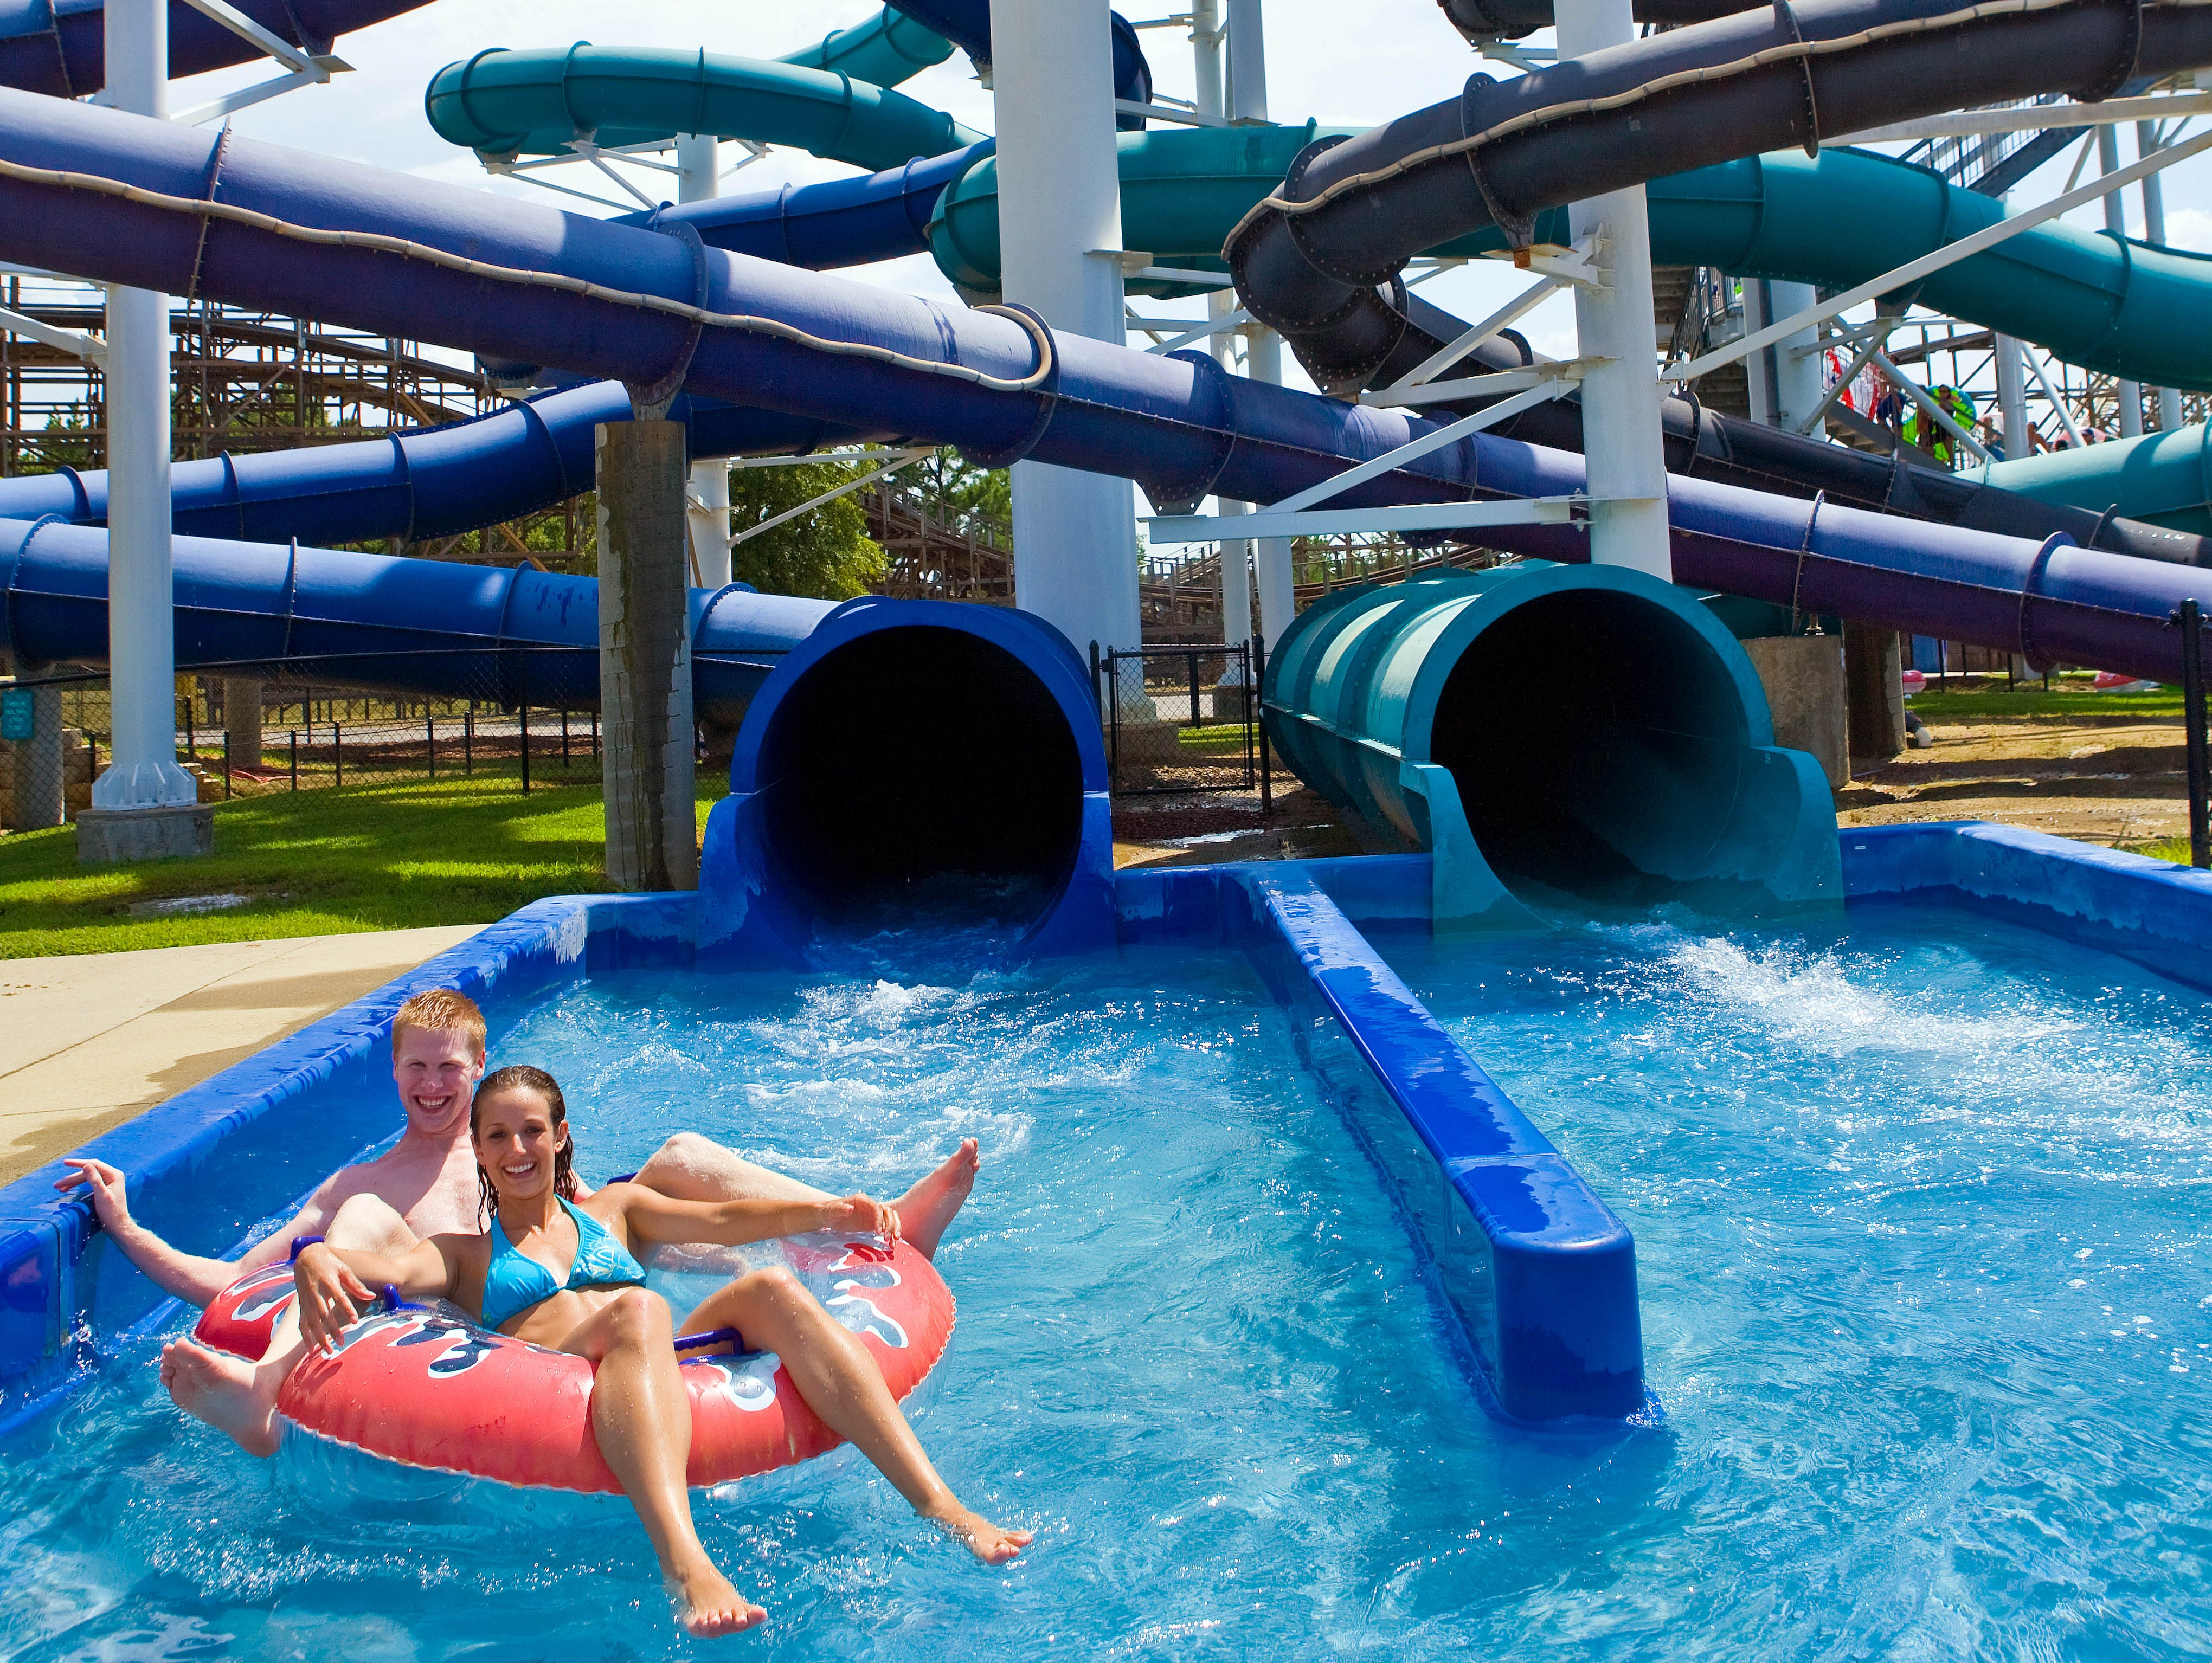 Get discounted tickets to Carowinds theme park and water park along with many others!